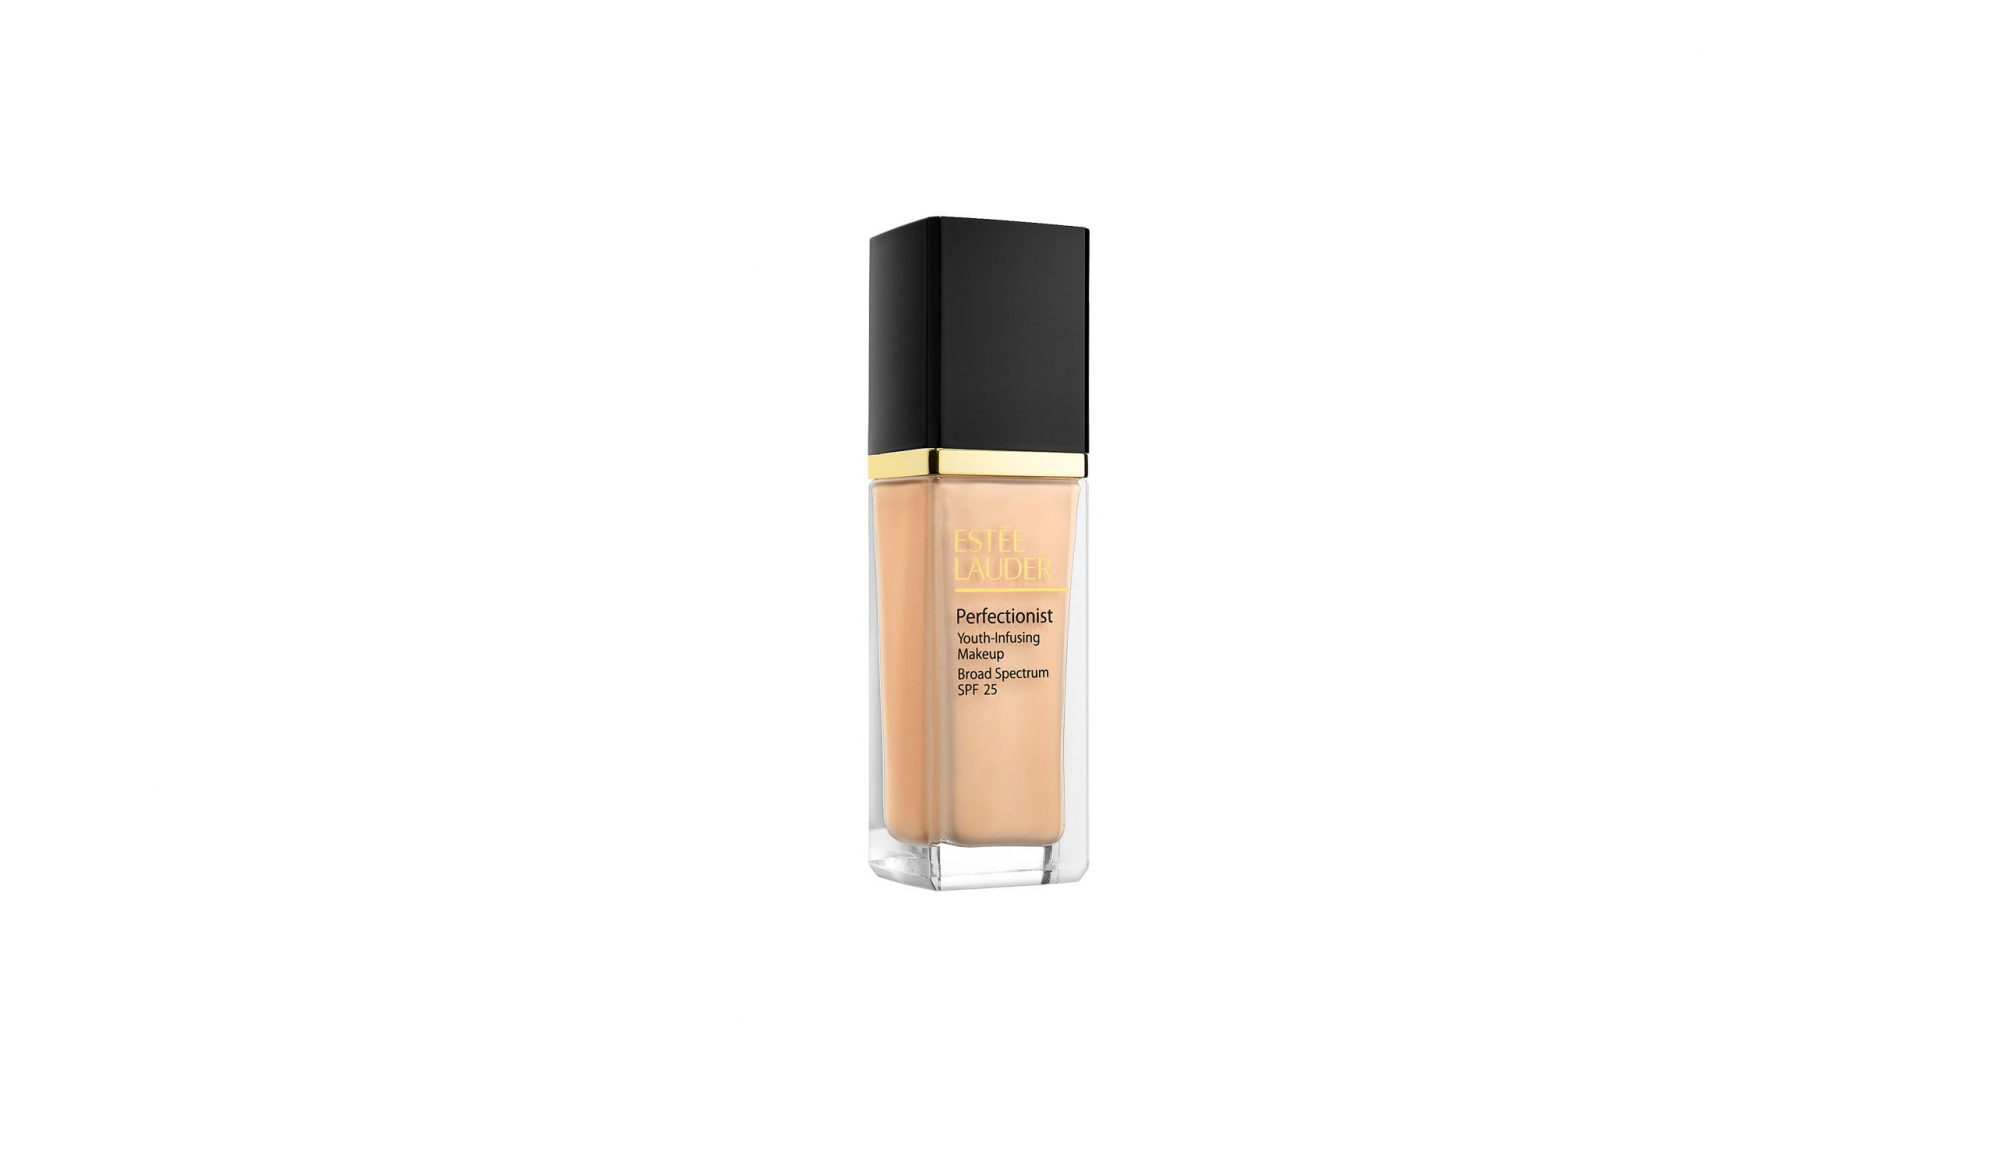 Estée Lauder Perfectionist Youth-Infusing Serum Makeup SPF 25